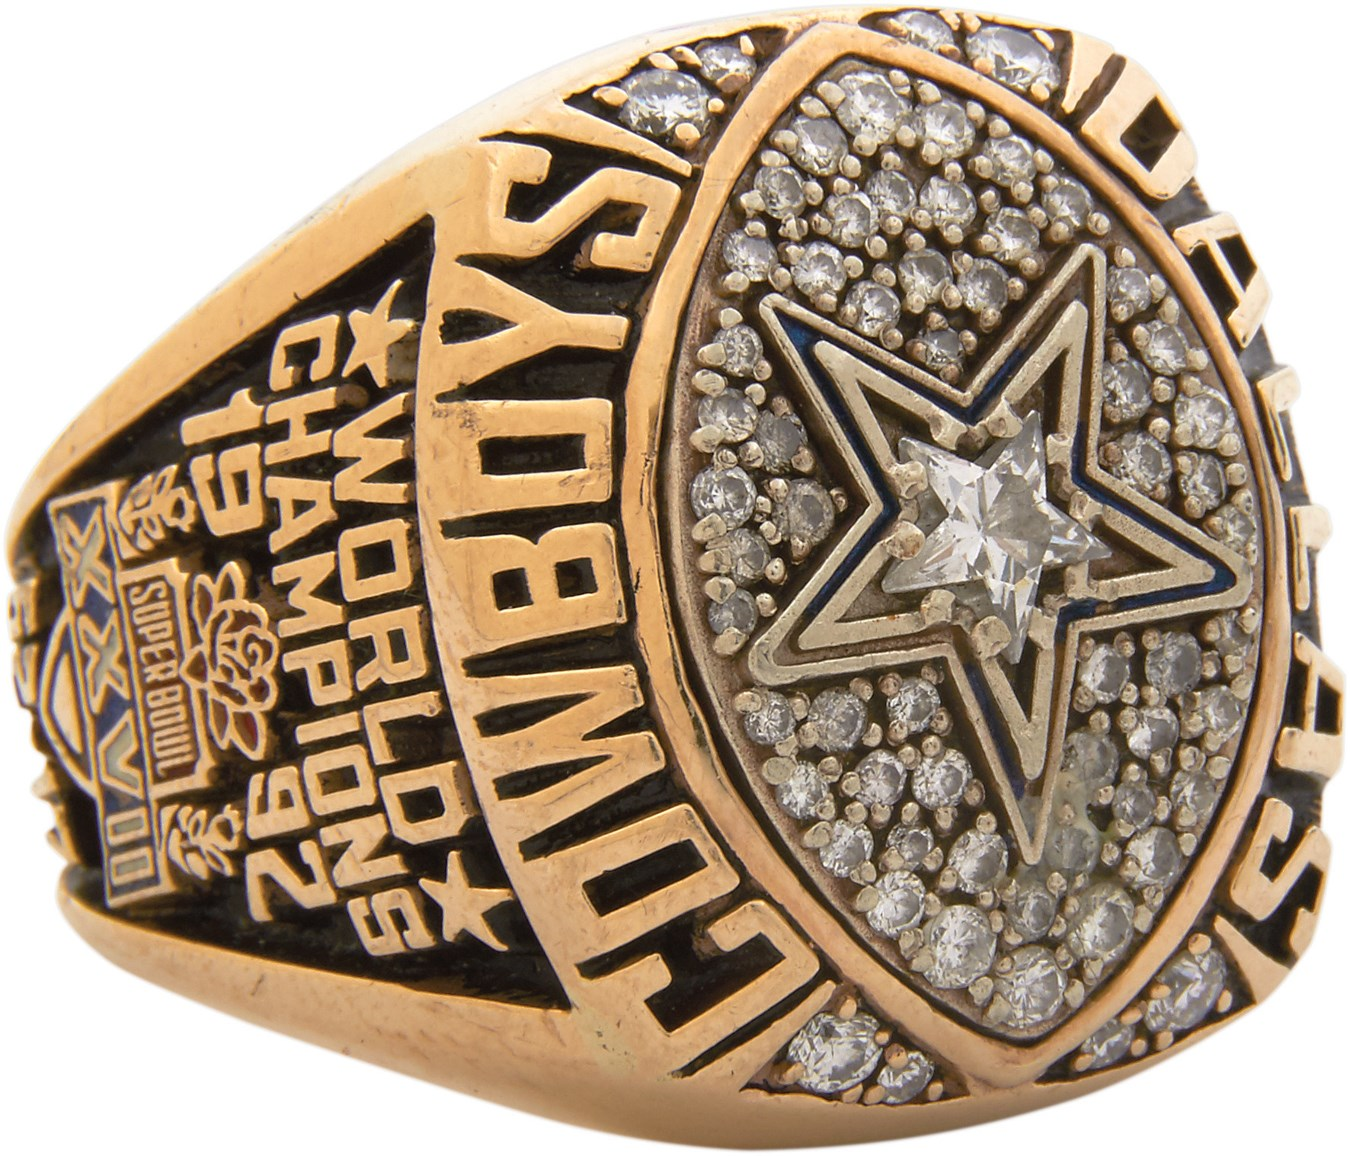 Tony Casillas 1992 Dallas Cowboys Super Bowl Champion Ring (Player LOA)